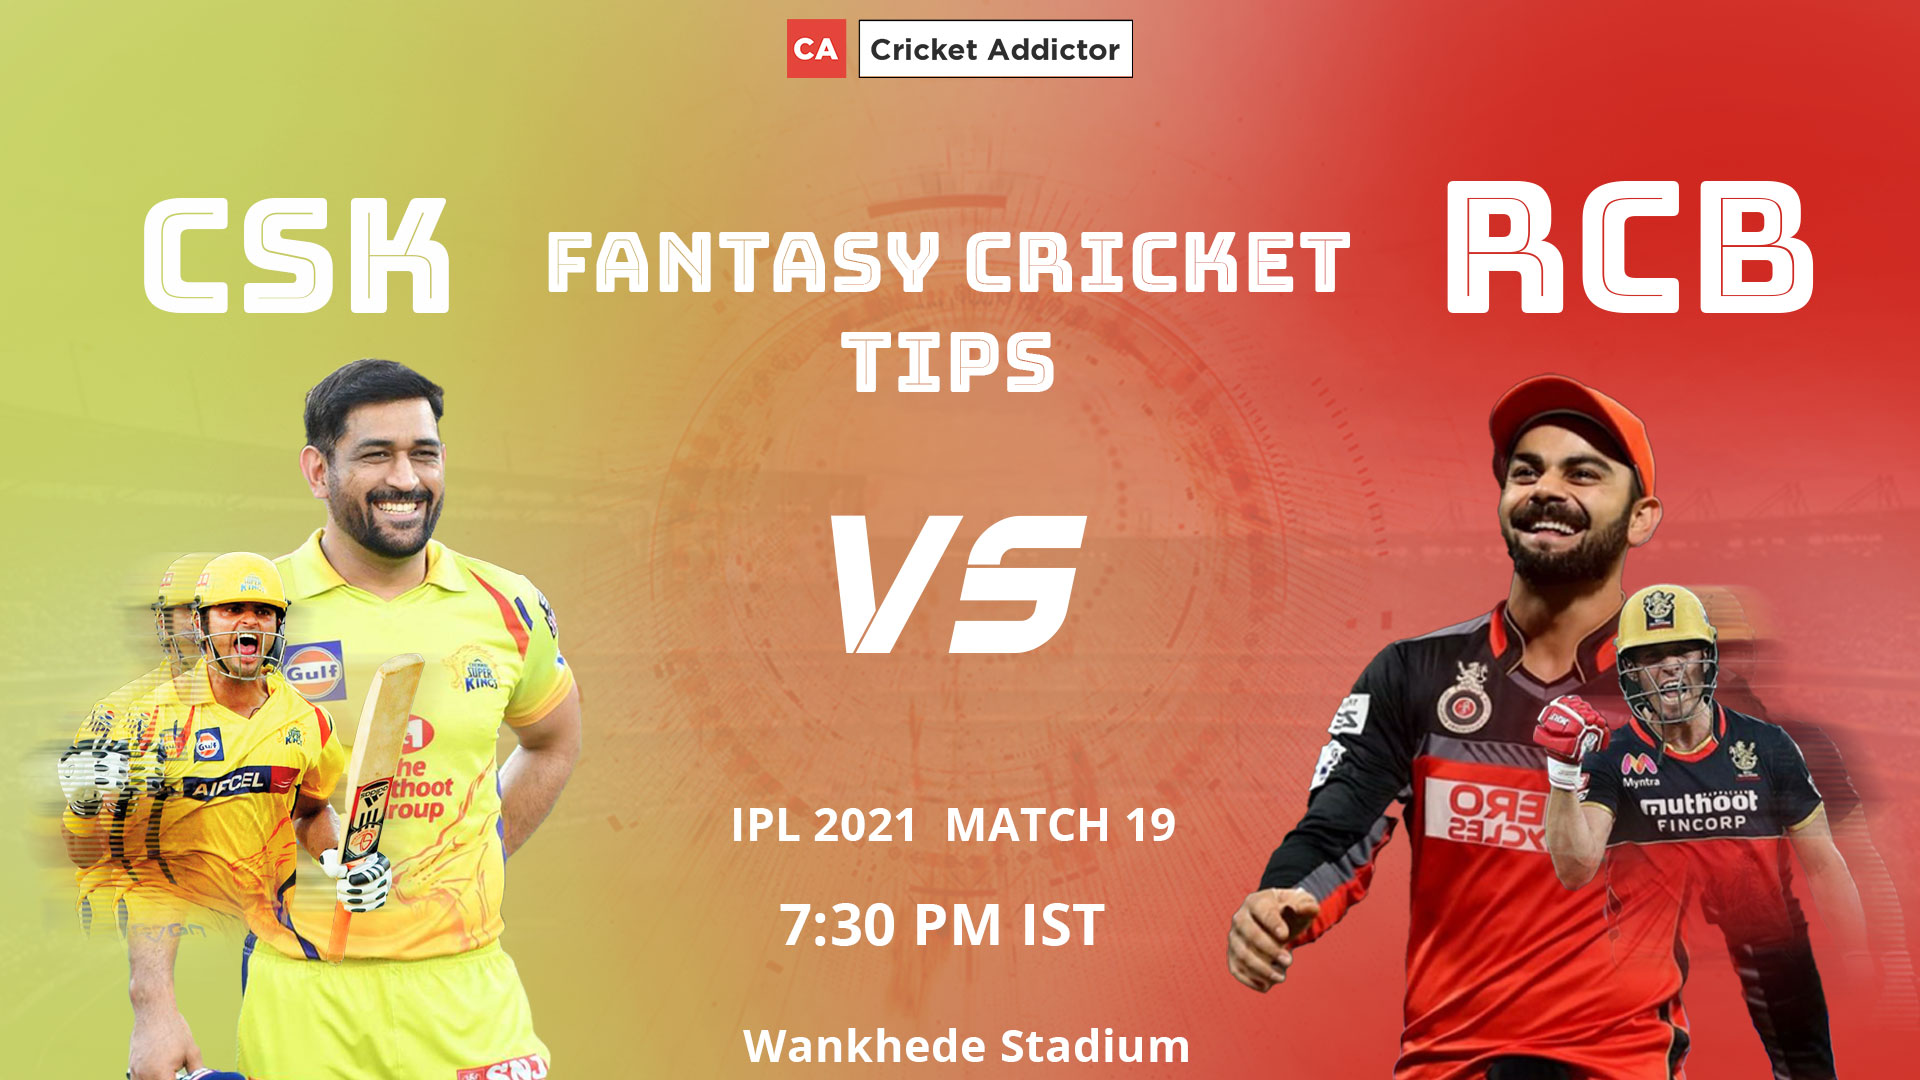 Chennai Super Kings (CSK) vs Royal Challengers Bangalore (RCB) Dream11 Prediction, Fantasy Cricket Tips, Playing XI, Fantasy Team, Pitch Report, Dream11 Team, Injury Update of VIVO IPL 2021.